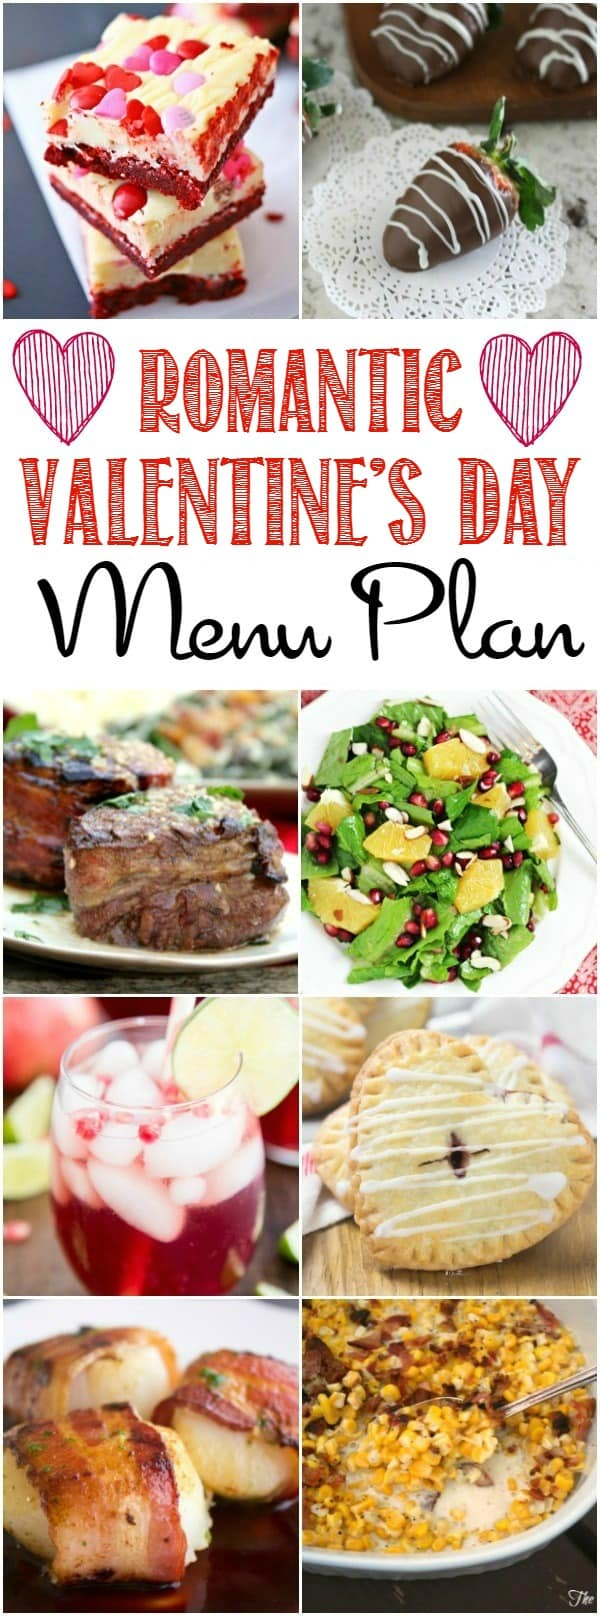 Create the perfect meal with the help of this Romantic Valentine's Day Menu Plan | cookingwithcurls.com